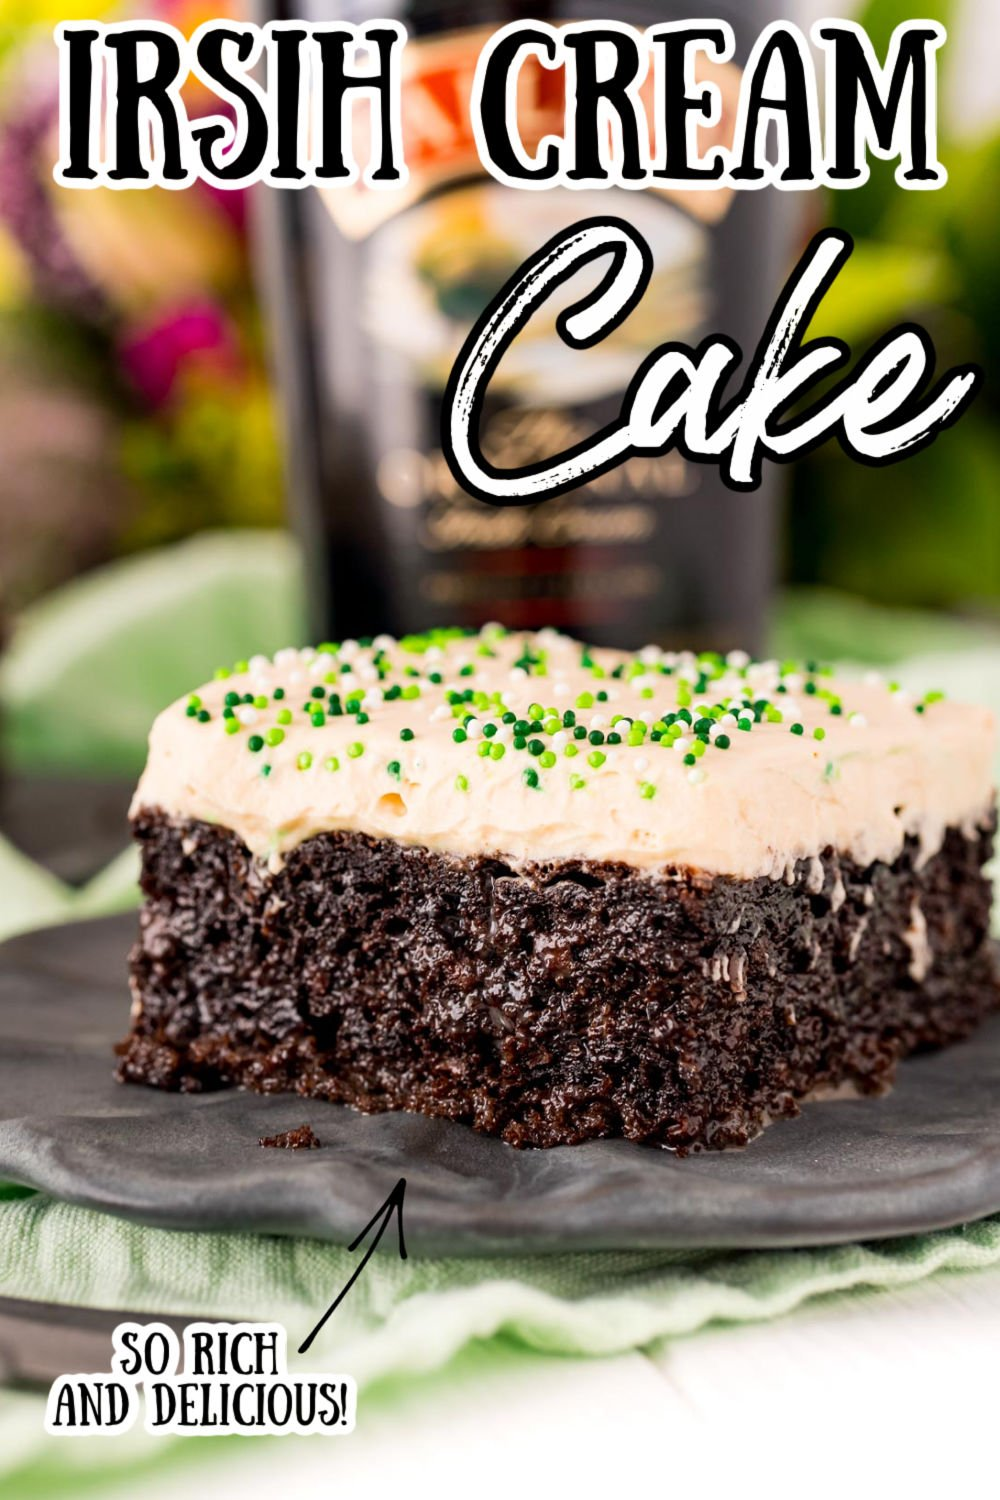 Chocolate Irish Cream Cake is made with a generous dose of Irish cream and topped with a fluffy, pudding-based frosting. This grown-up dessert is moist, rich, and oh-so-boozy! via @sugarandsoulco